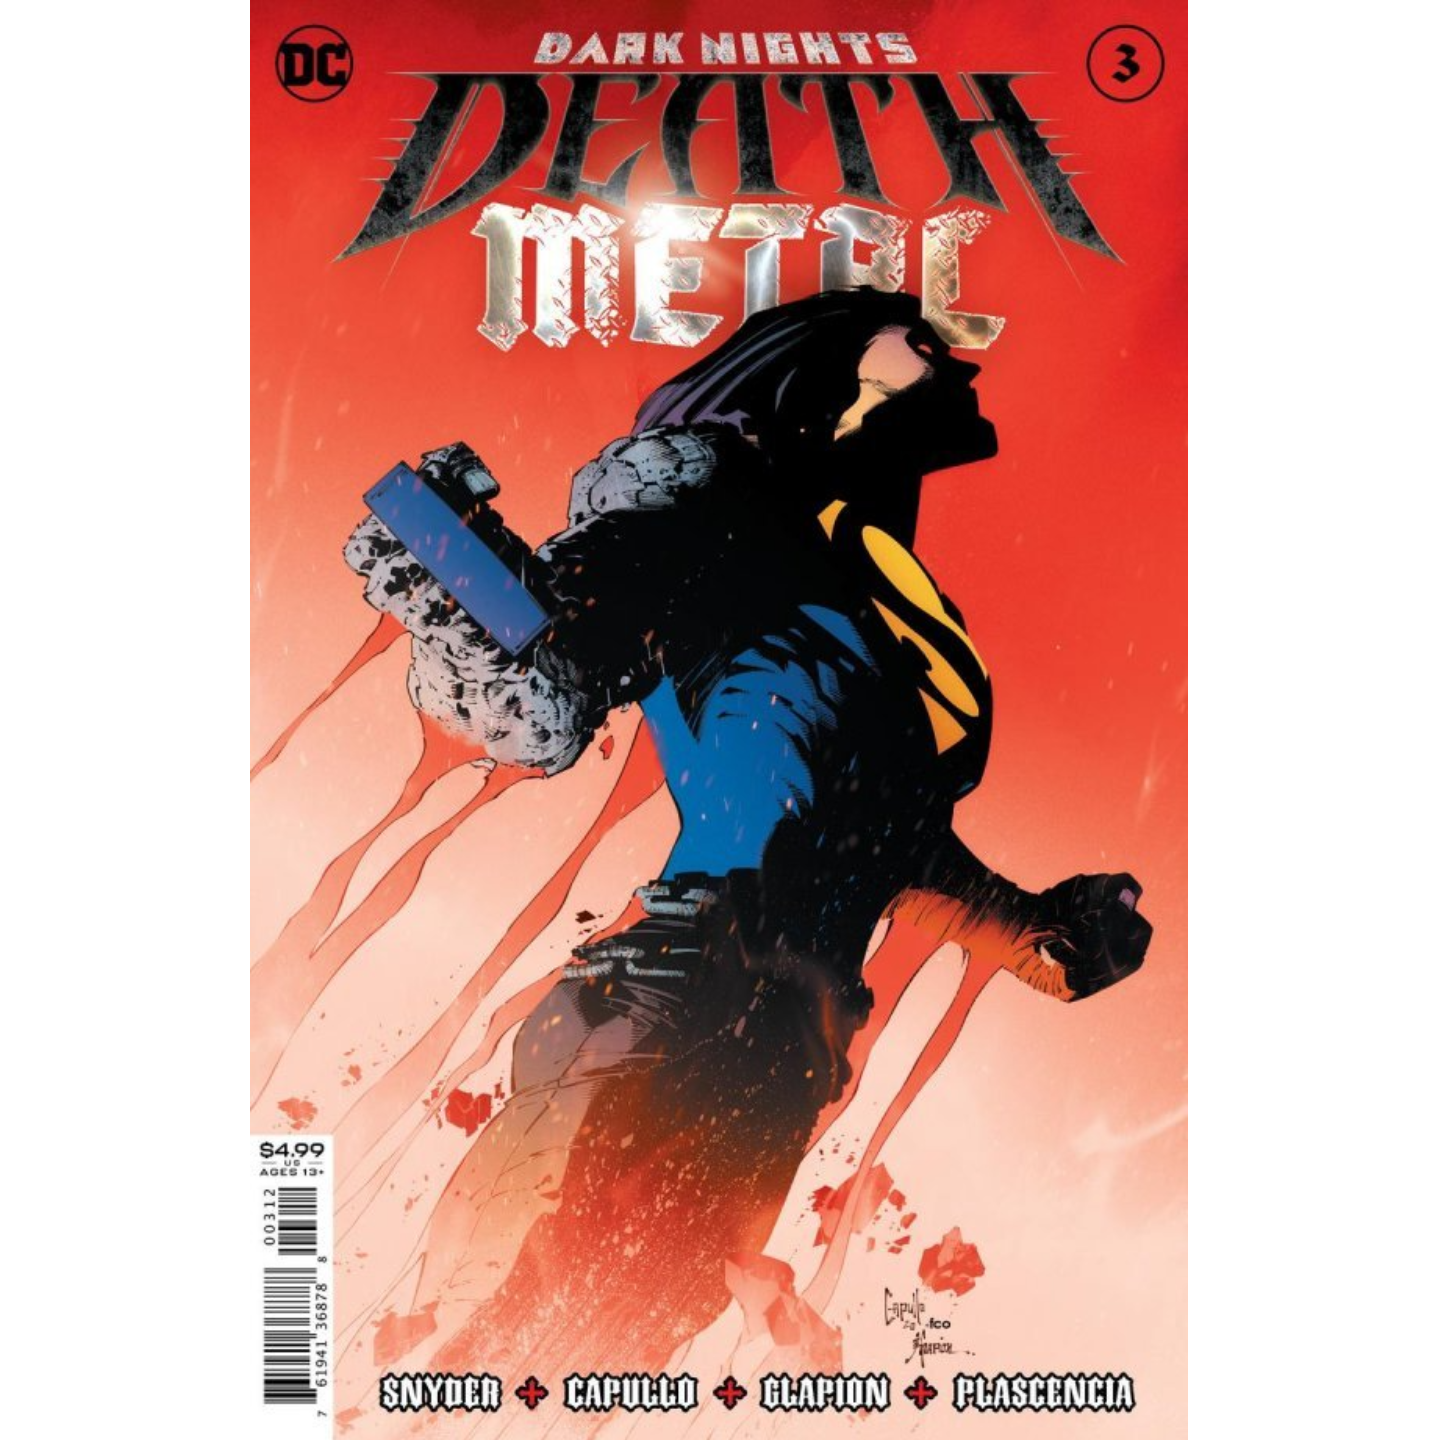 DARK NIGHTS DEATH METAL #3 (OF 6) Second printing